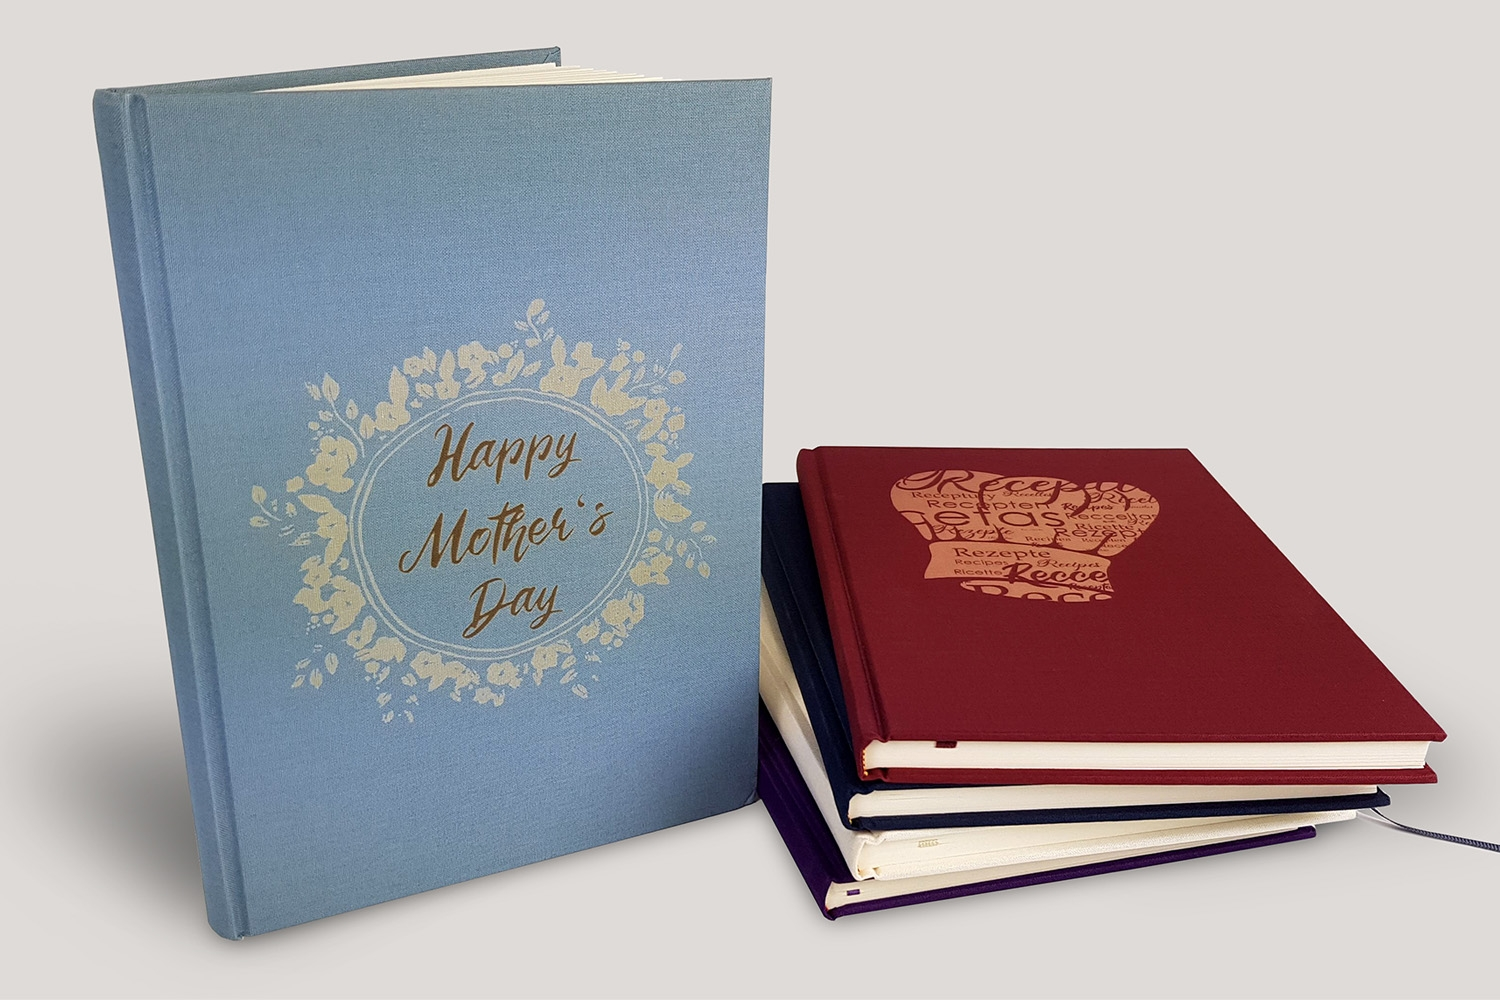 personalizable books for special occasions